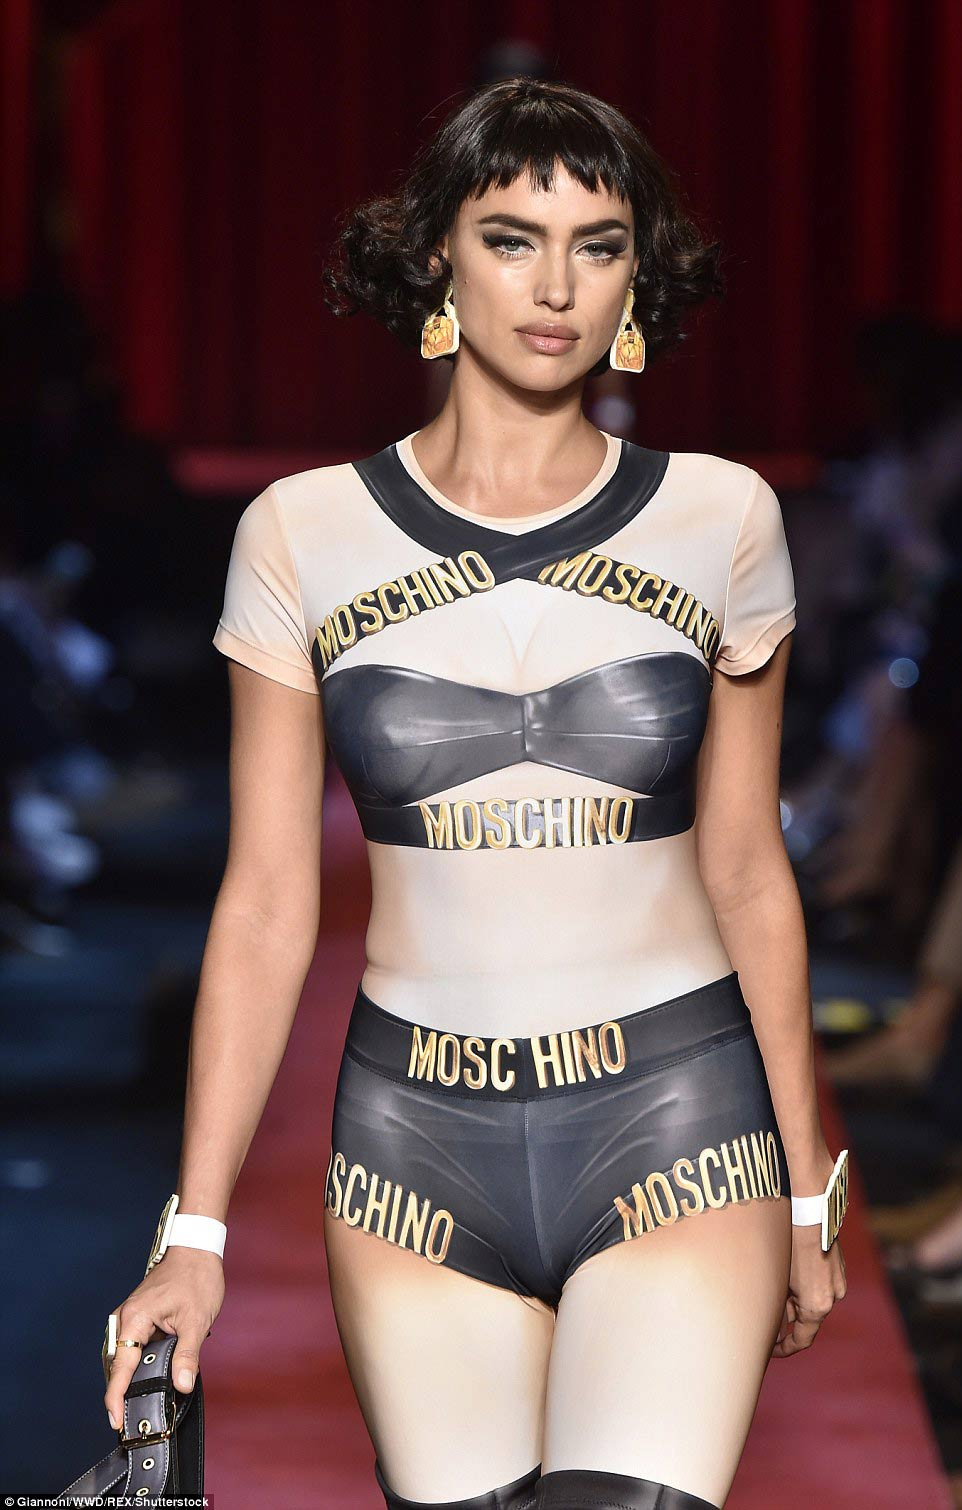 moschino lai gay sung so voi mot vay nhu do choi giay - 9